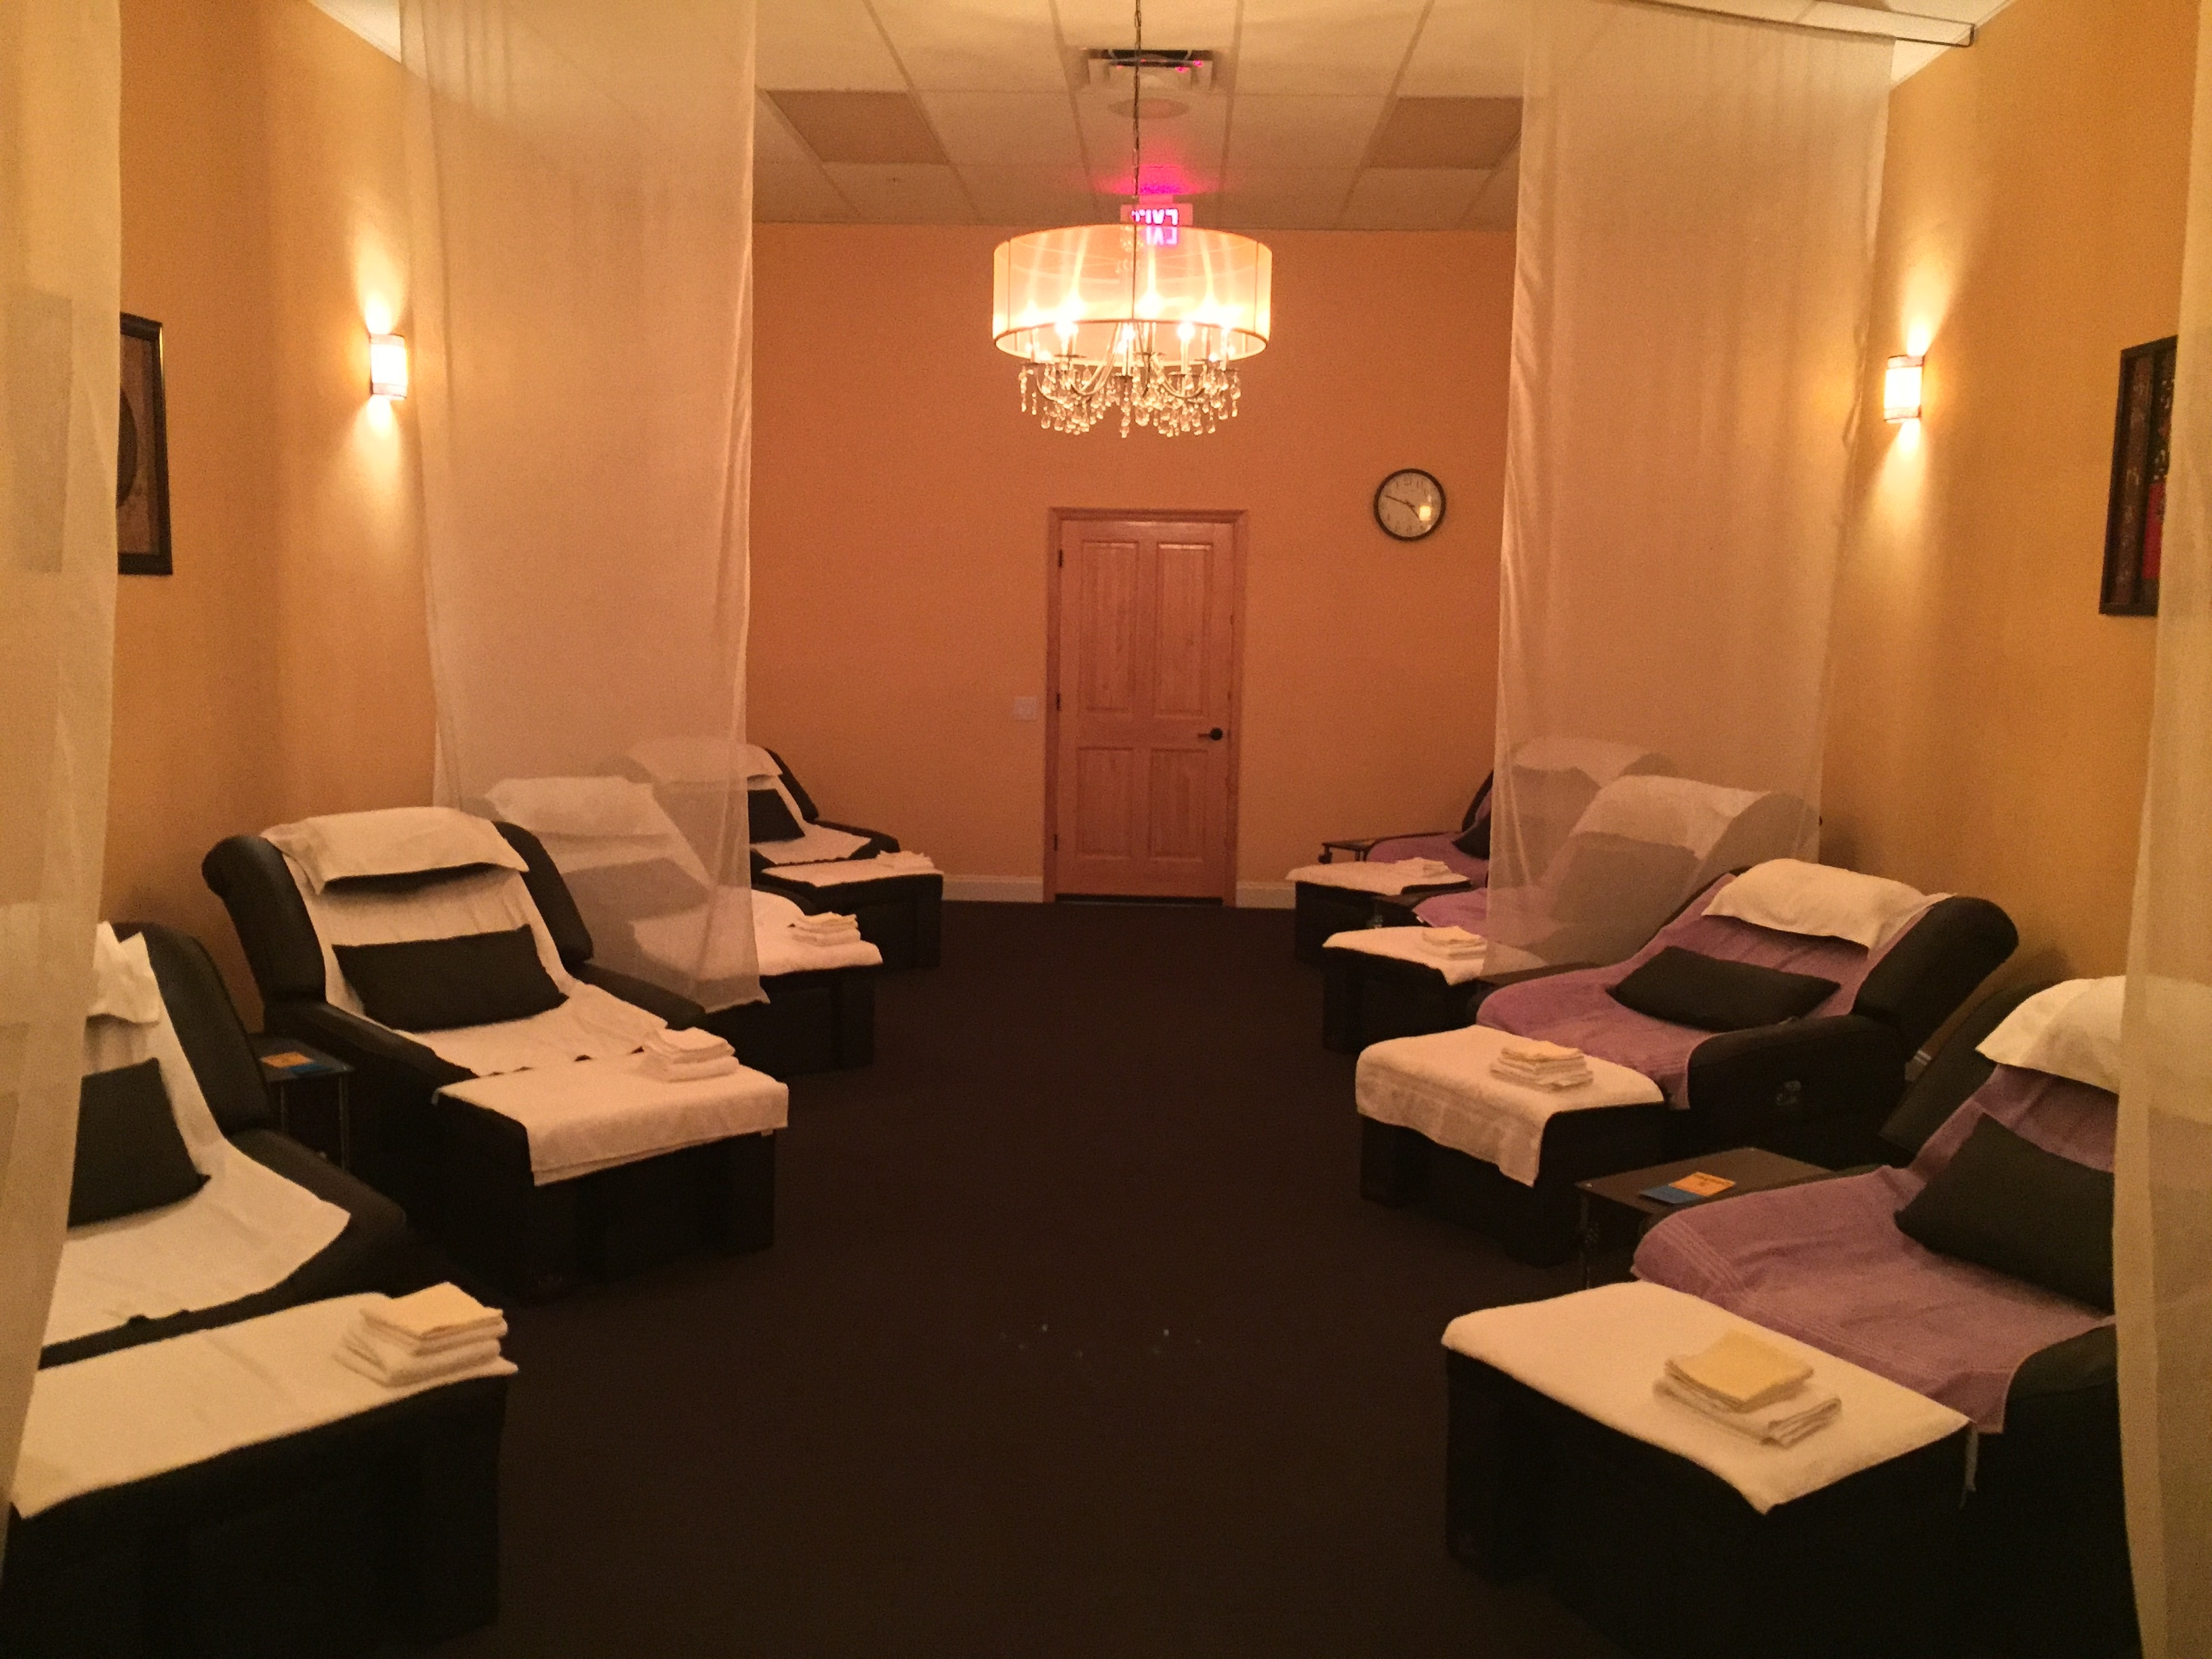 Foot Massage Spa And Acupressure Body Massage Throughout Foot Massage Sofas (View 13 of 20)